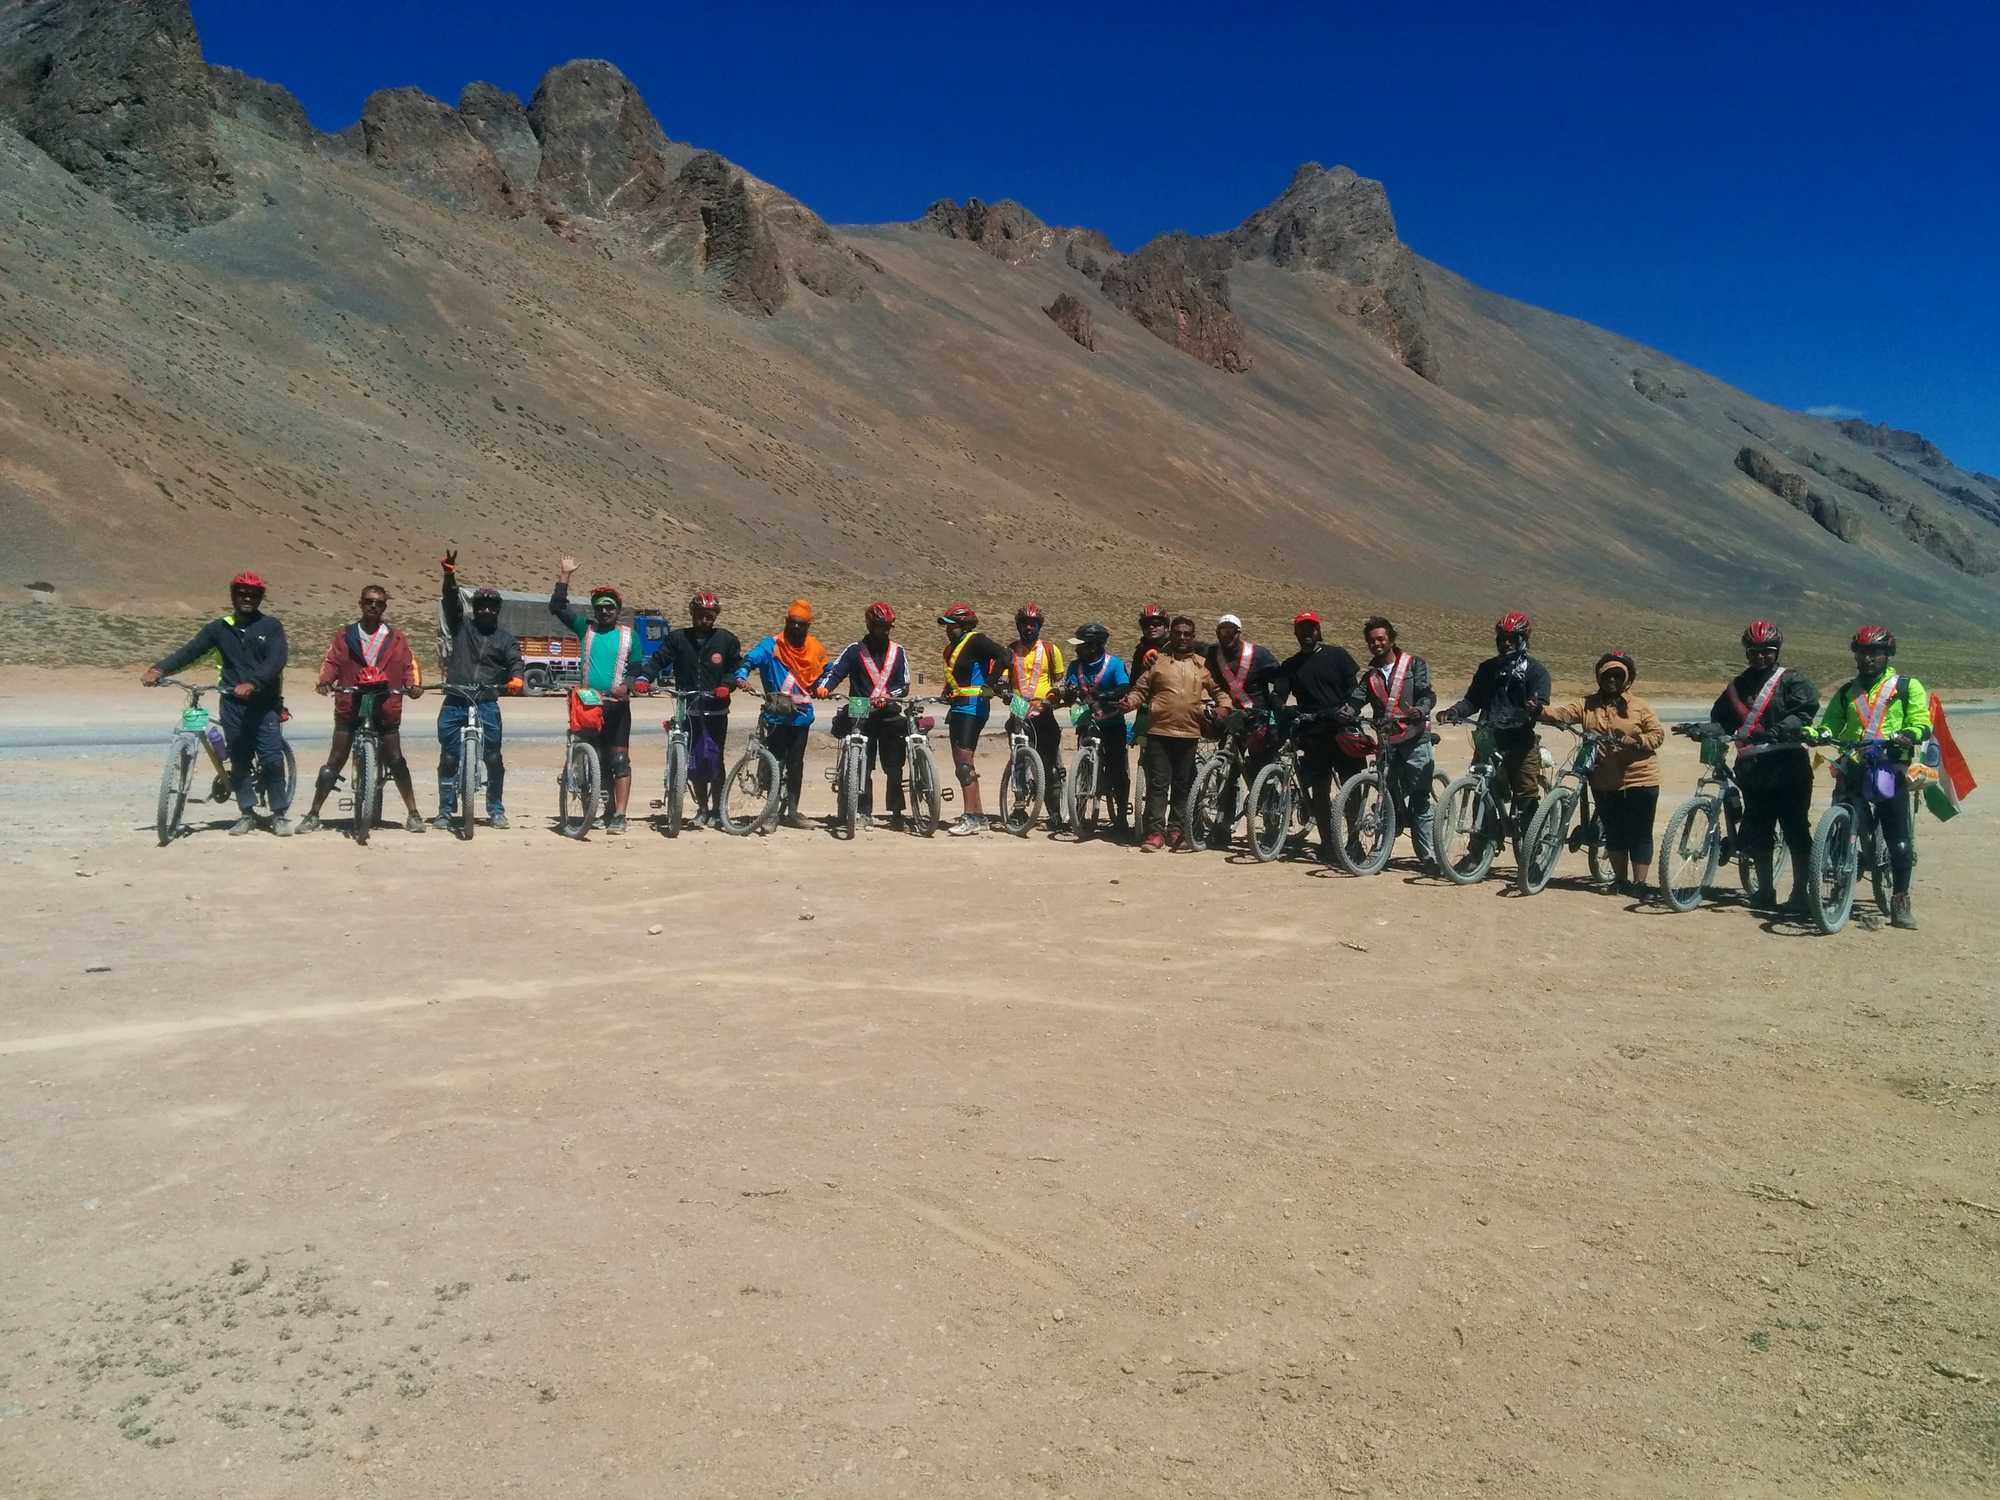 Why is it recommended to cycle from Manali to Leh as a team?